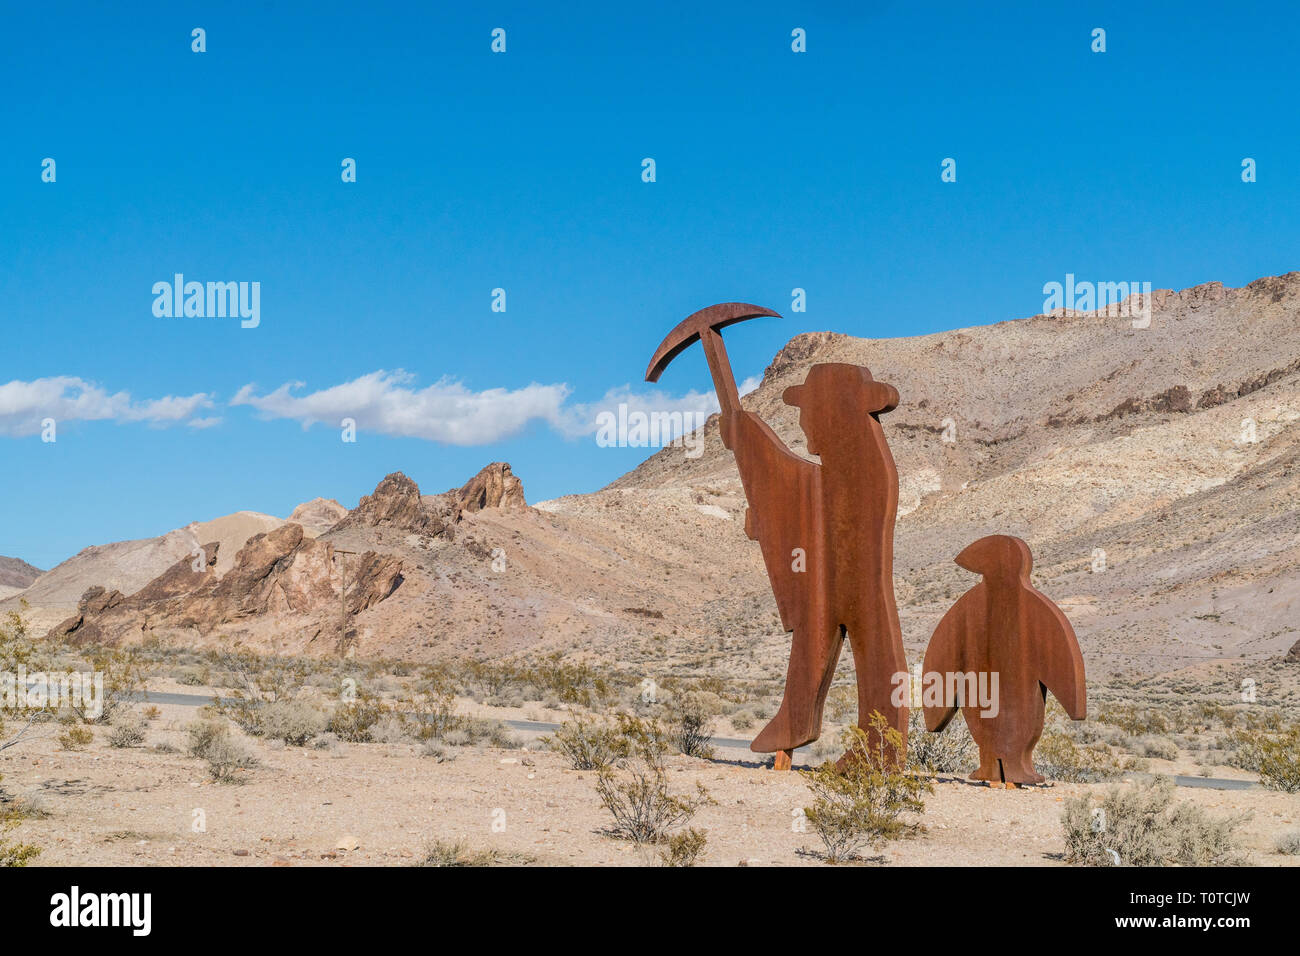 A large size outdoor sculpture, Tribute to Shorty Harris, by  Belgian artist Fred Bervoets, located at the Goldwell Open Air Museum in Rhyolite, Nevad - Stock Image